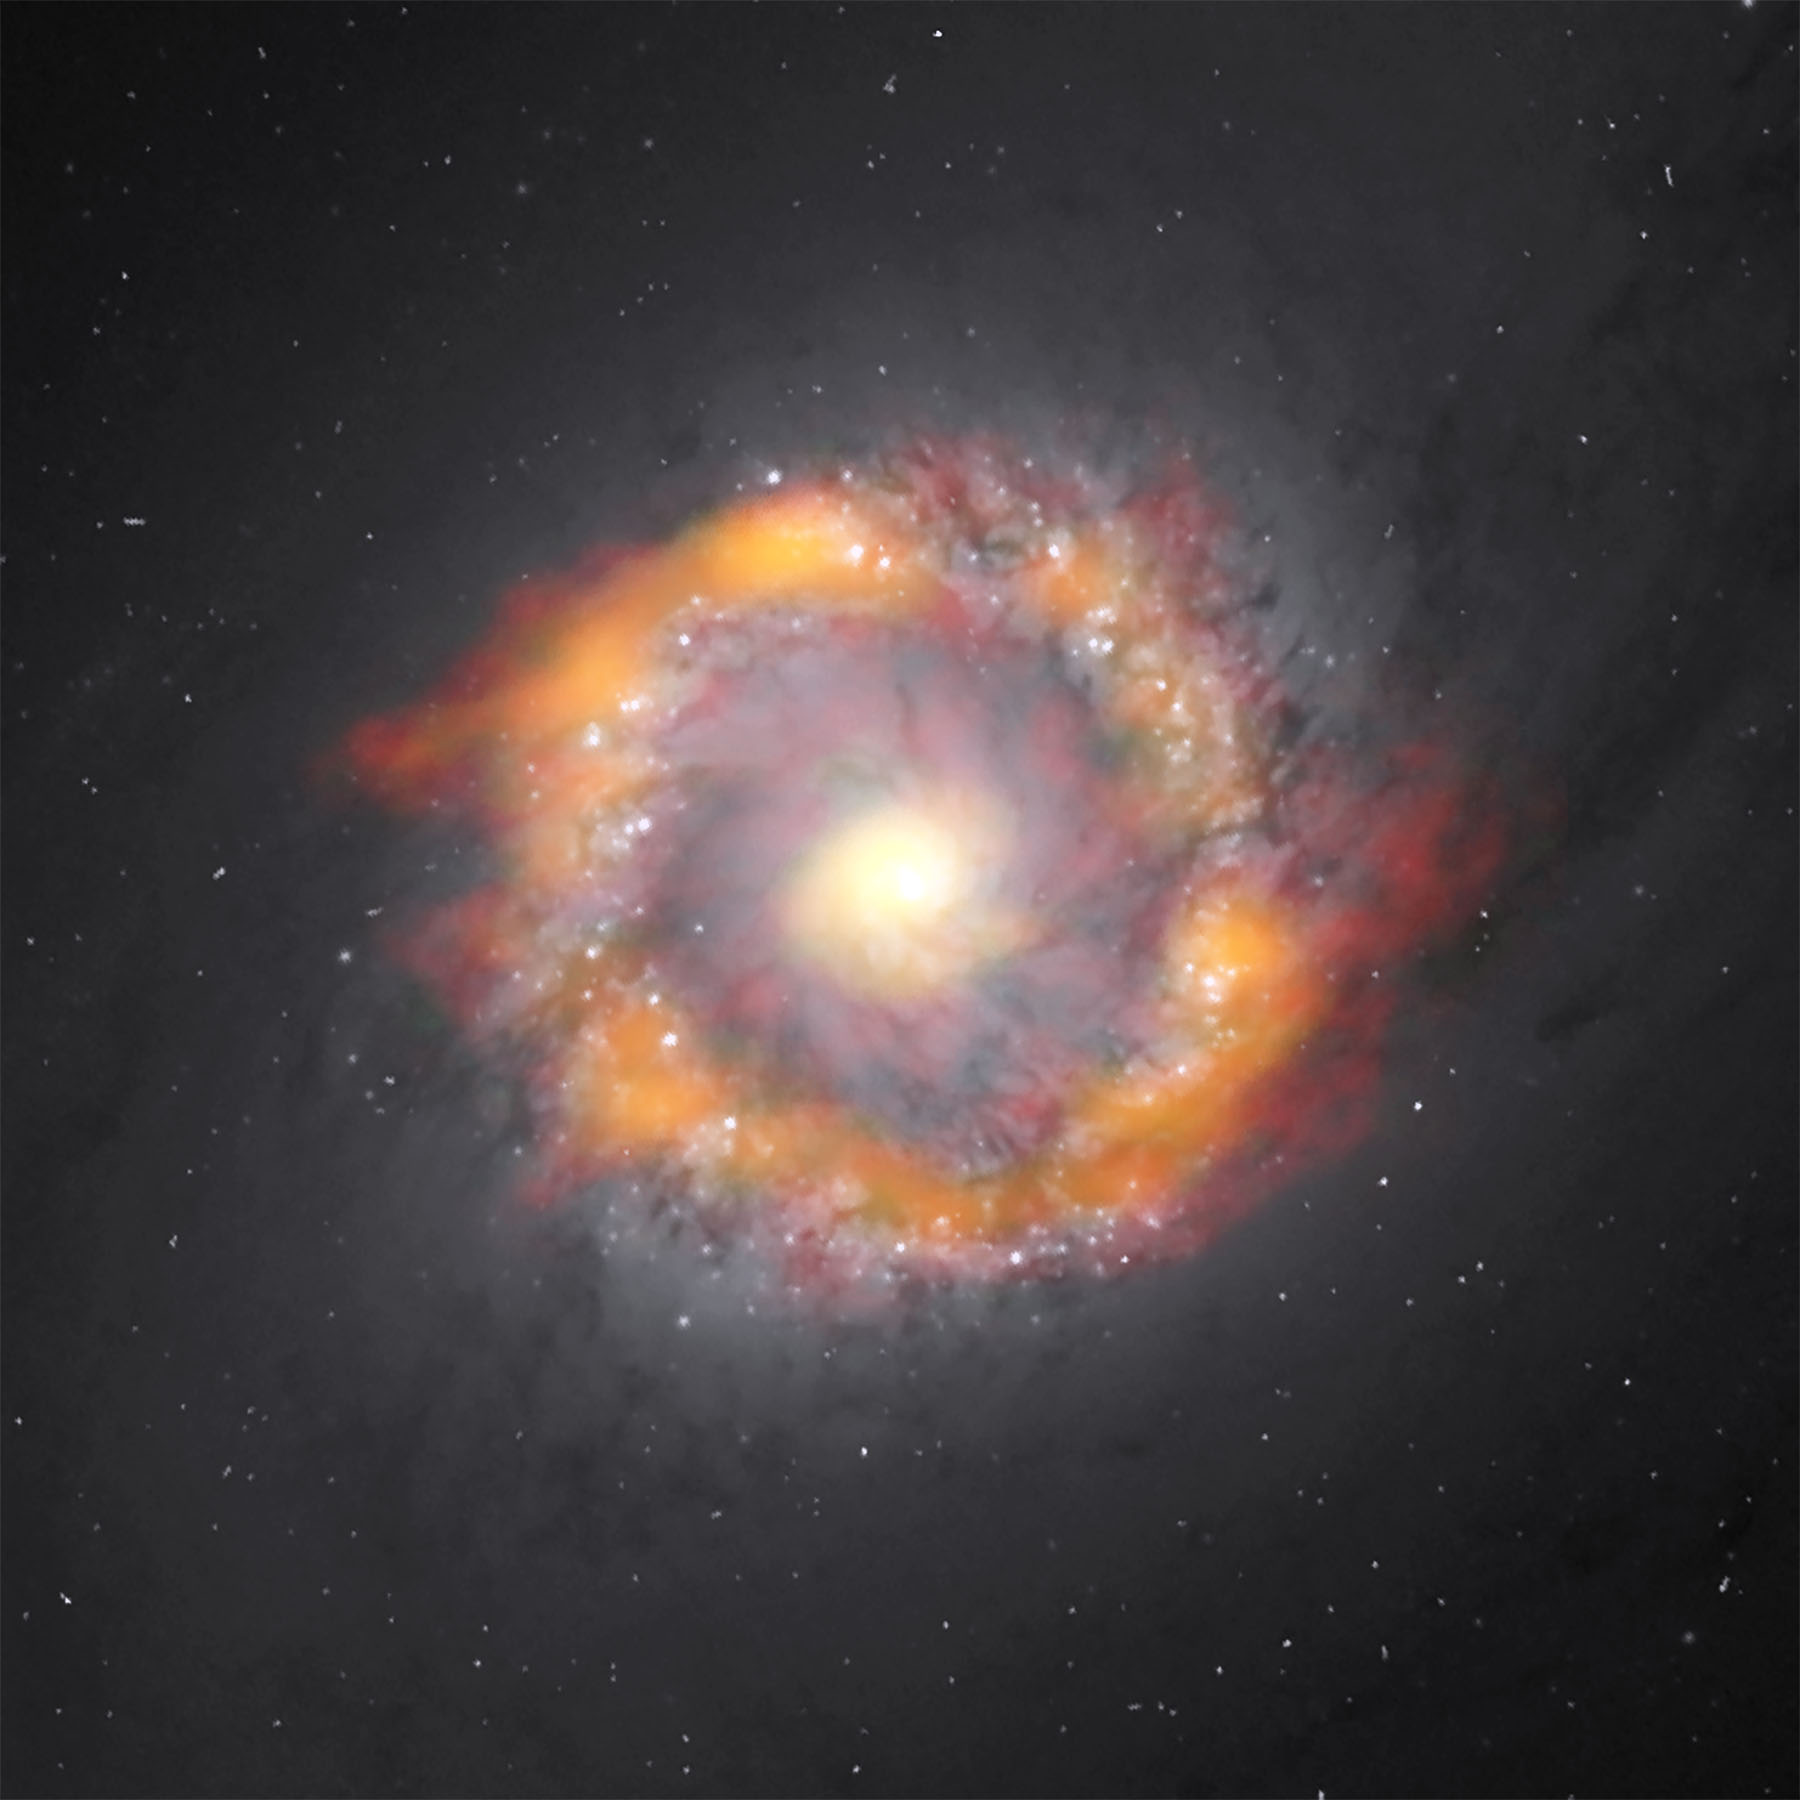 Barred spiral galaxy NGC 1097